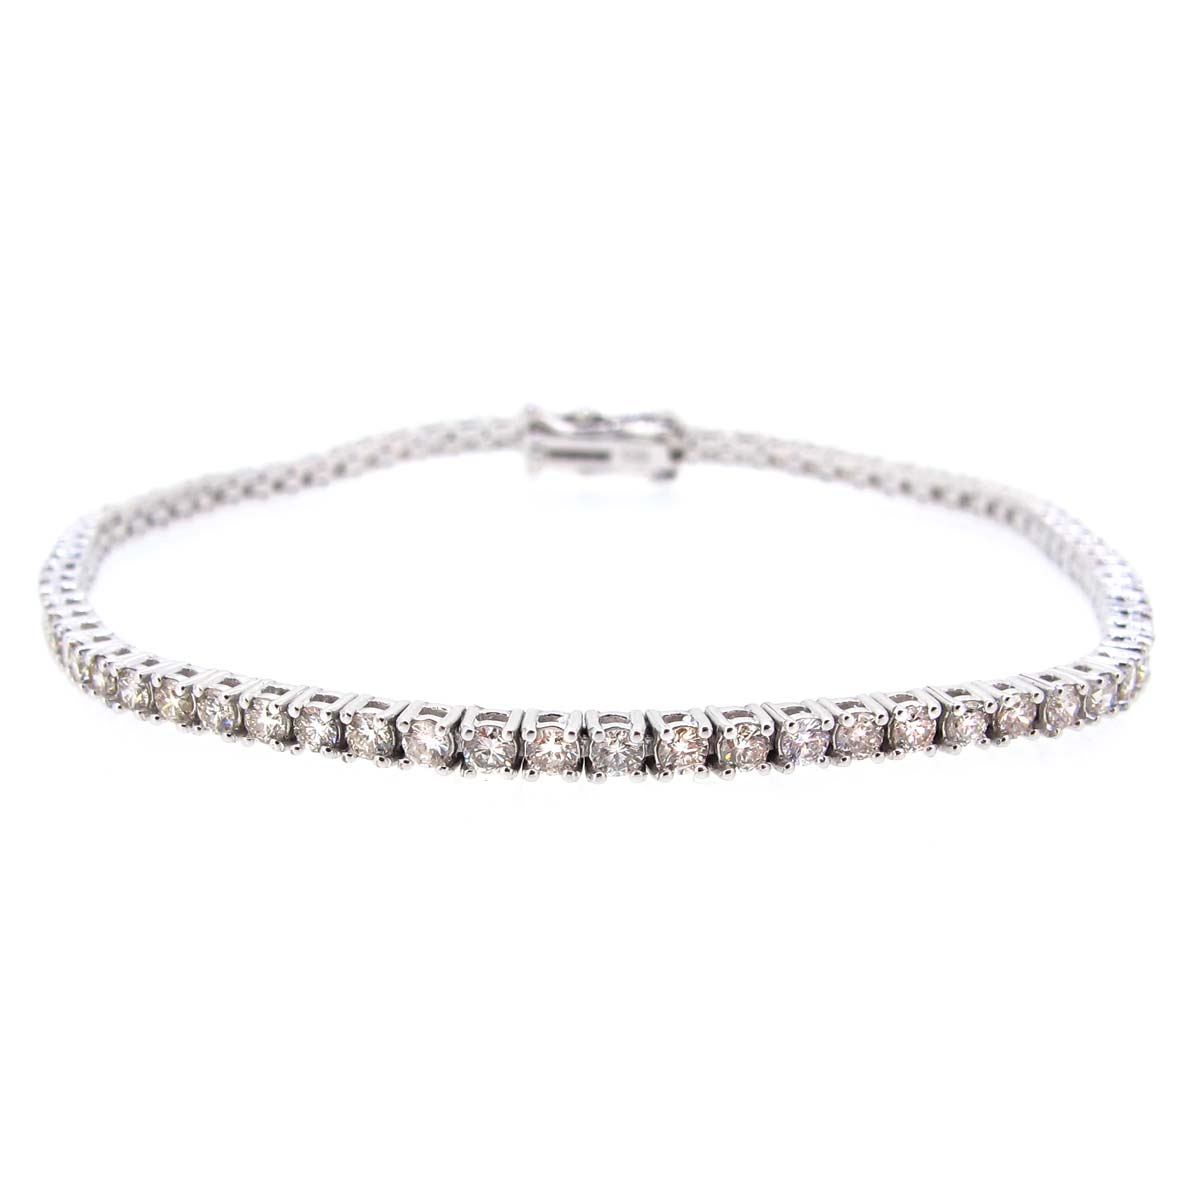 18ct White Gold & Diamond Tennis Bracelet